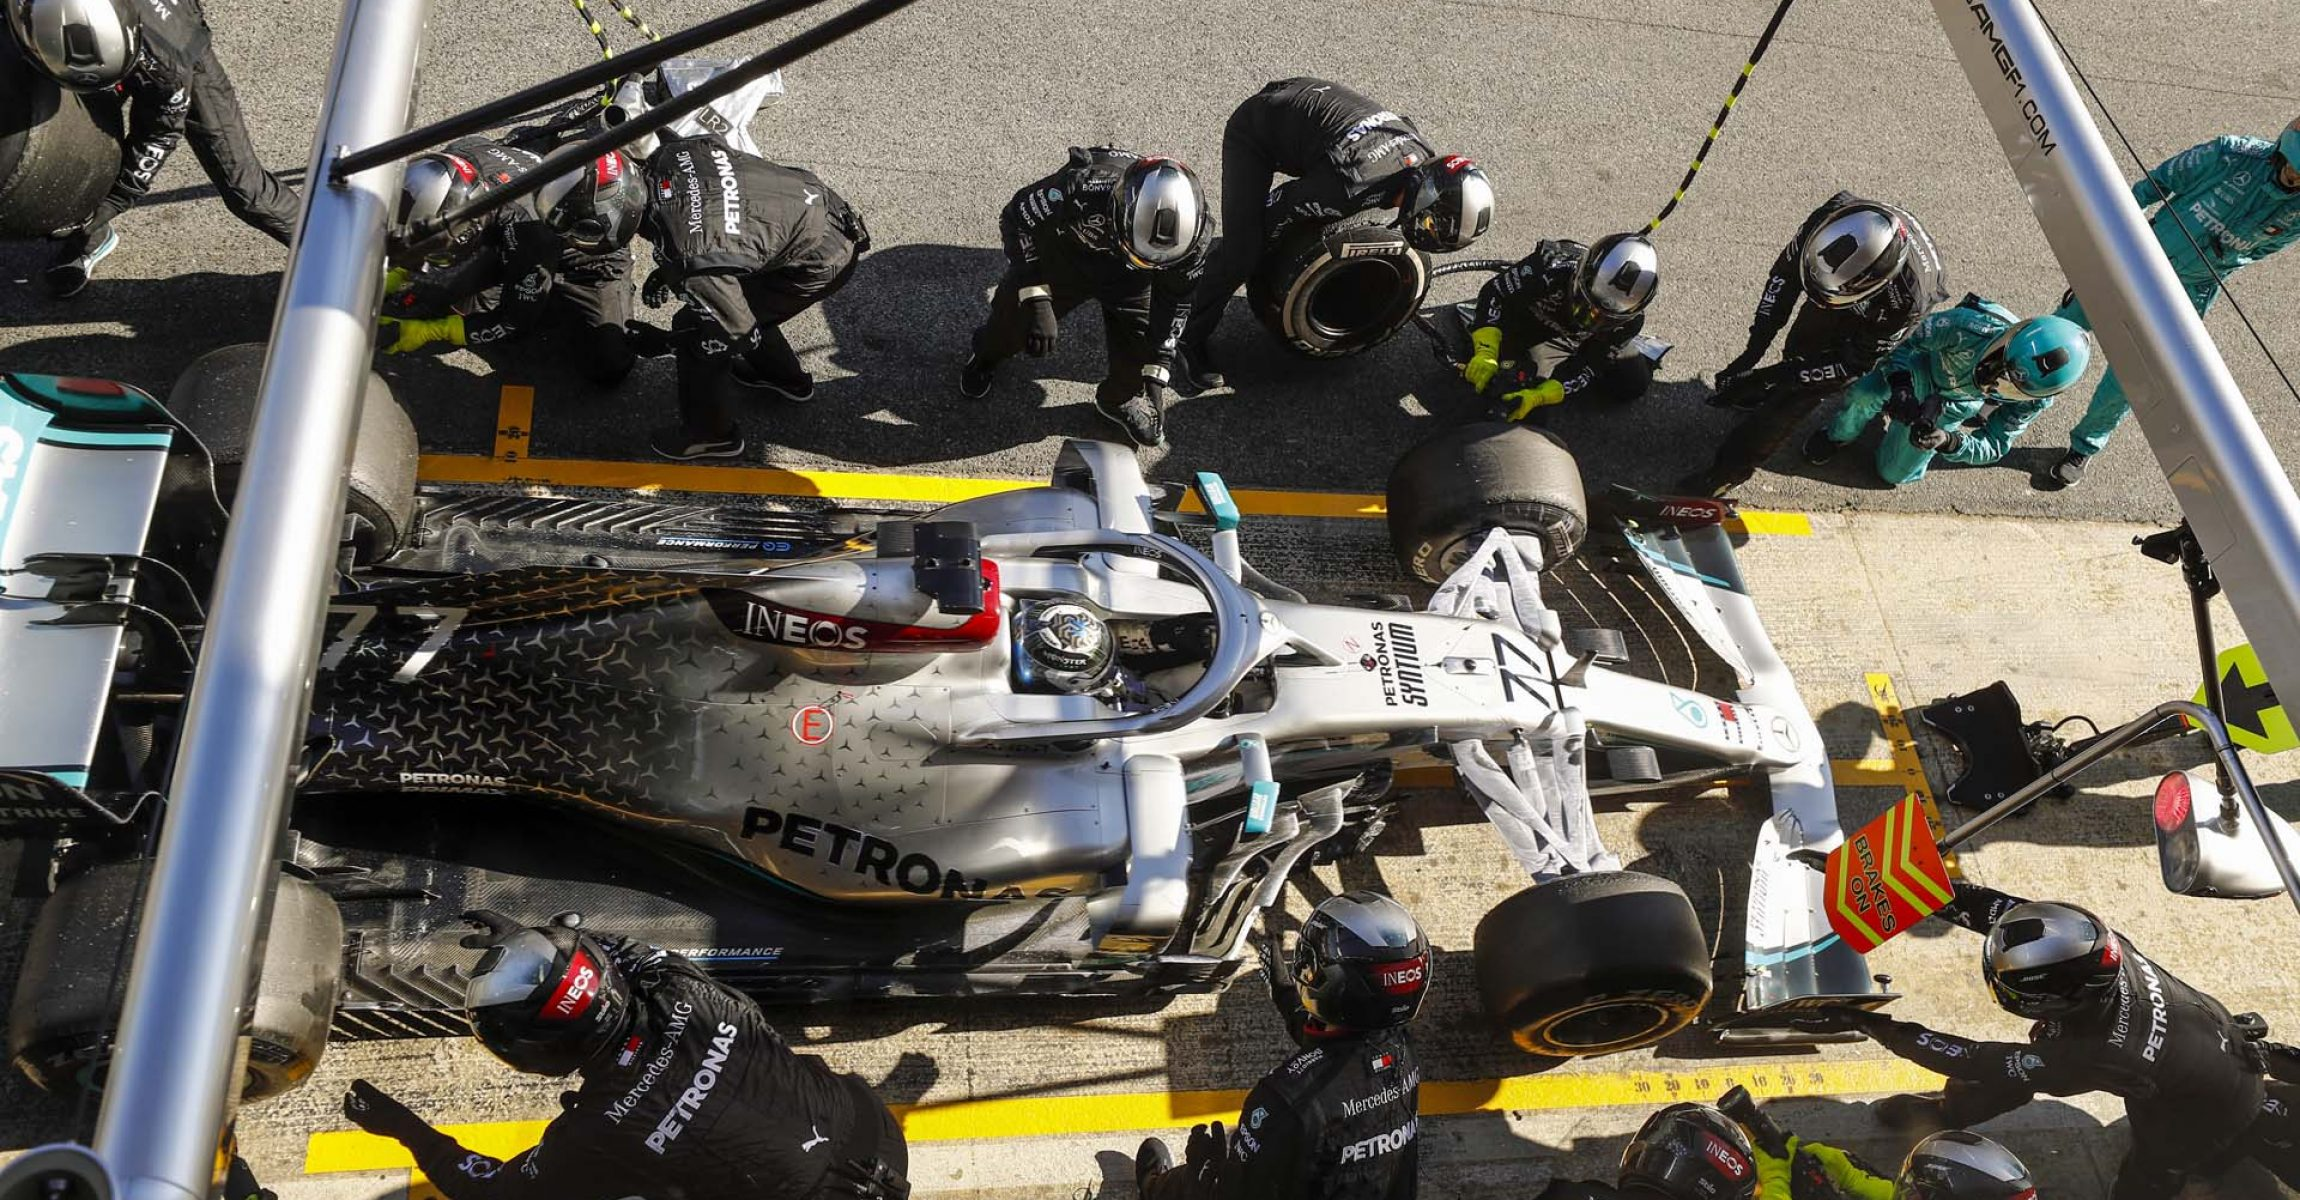 CIRCUIT DE BARCELONA-CATALUNYA, SPAIN - FEBRUARY 20: Valtteri Bottas, Mercedes F1 W11 EQ Power+, pit stop during the Barcelona February testing I at Circuit de Barcelona-Catalunya on February 20, 2020 in Circuit de Barcelona-Catalunya, Spain. (Photo by Glenn Dunbar / LAT Images)